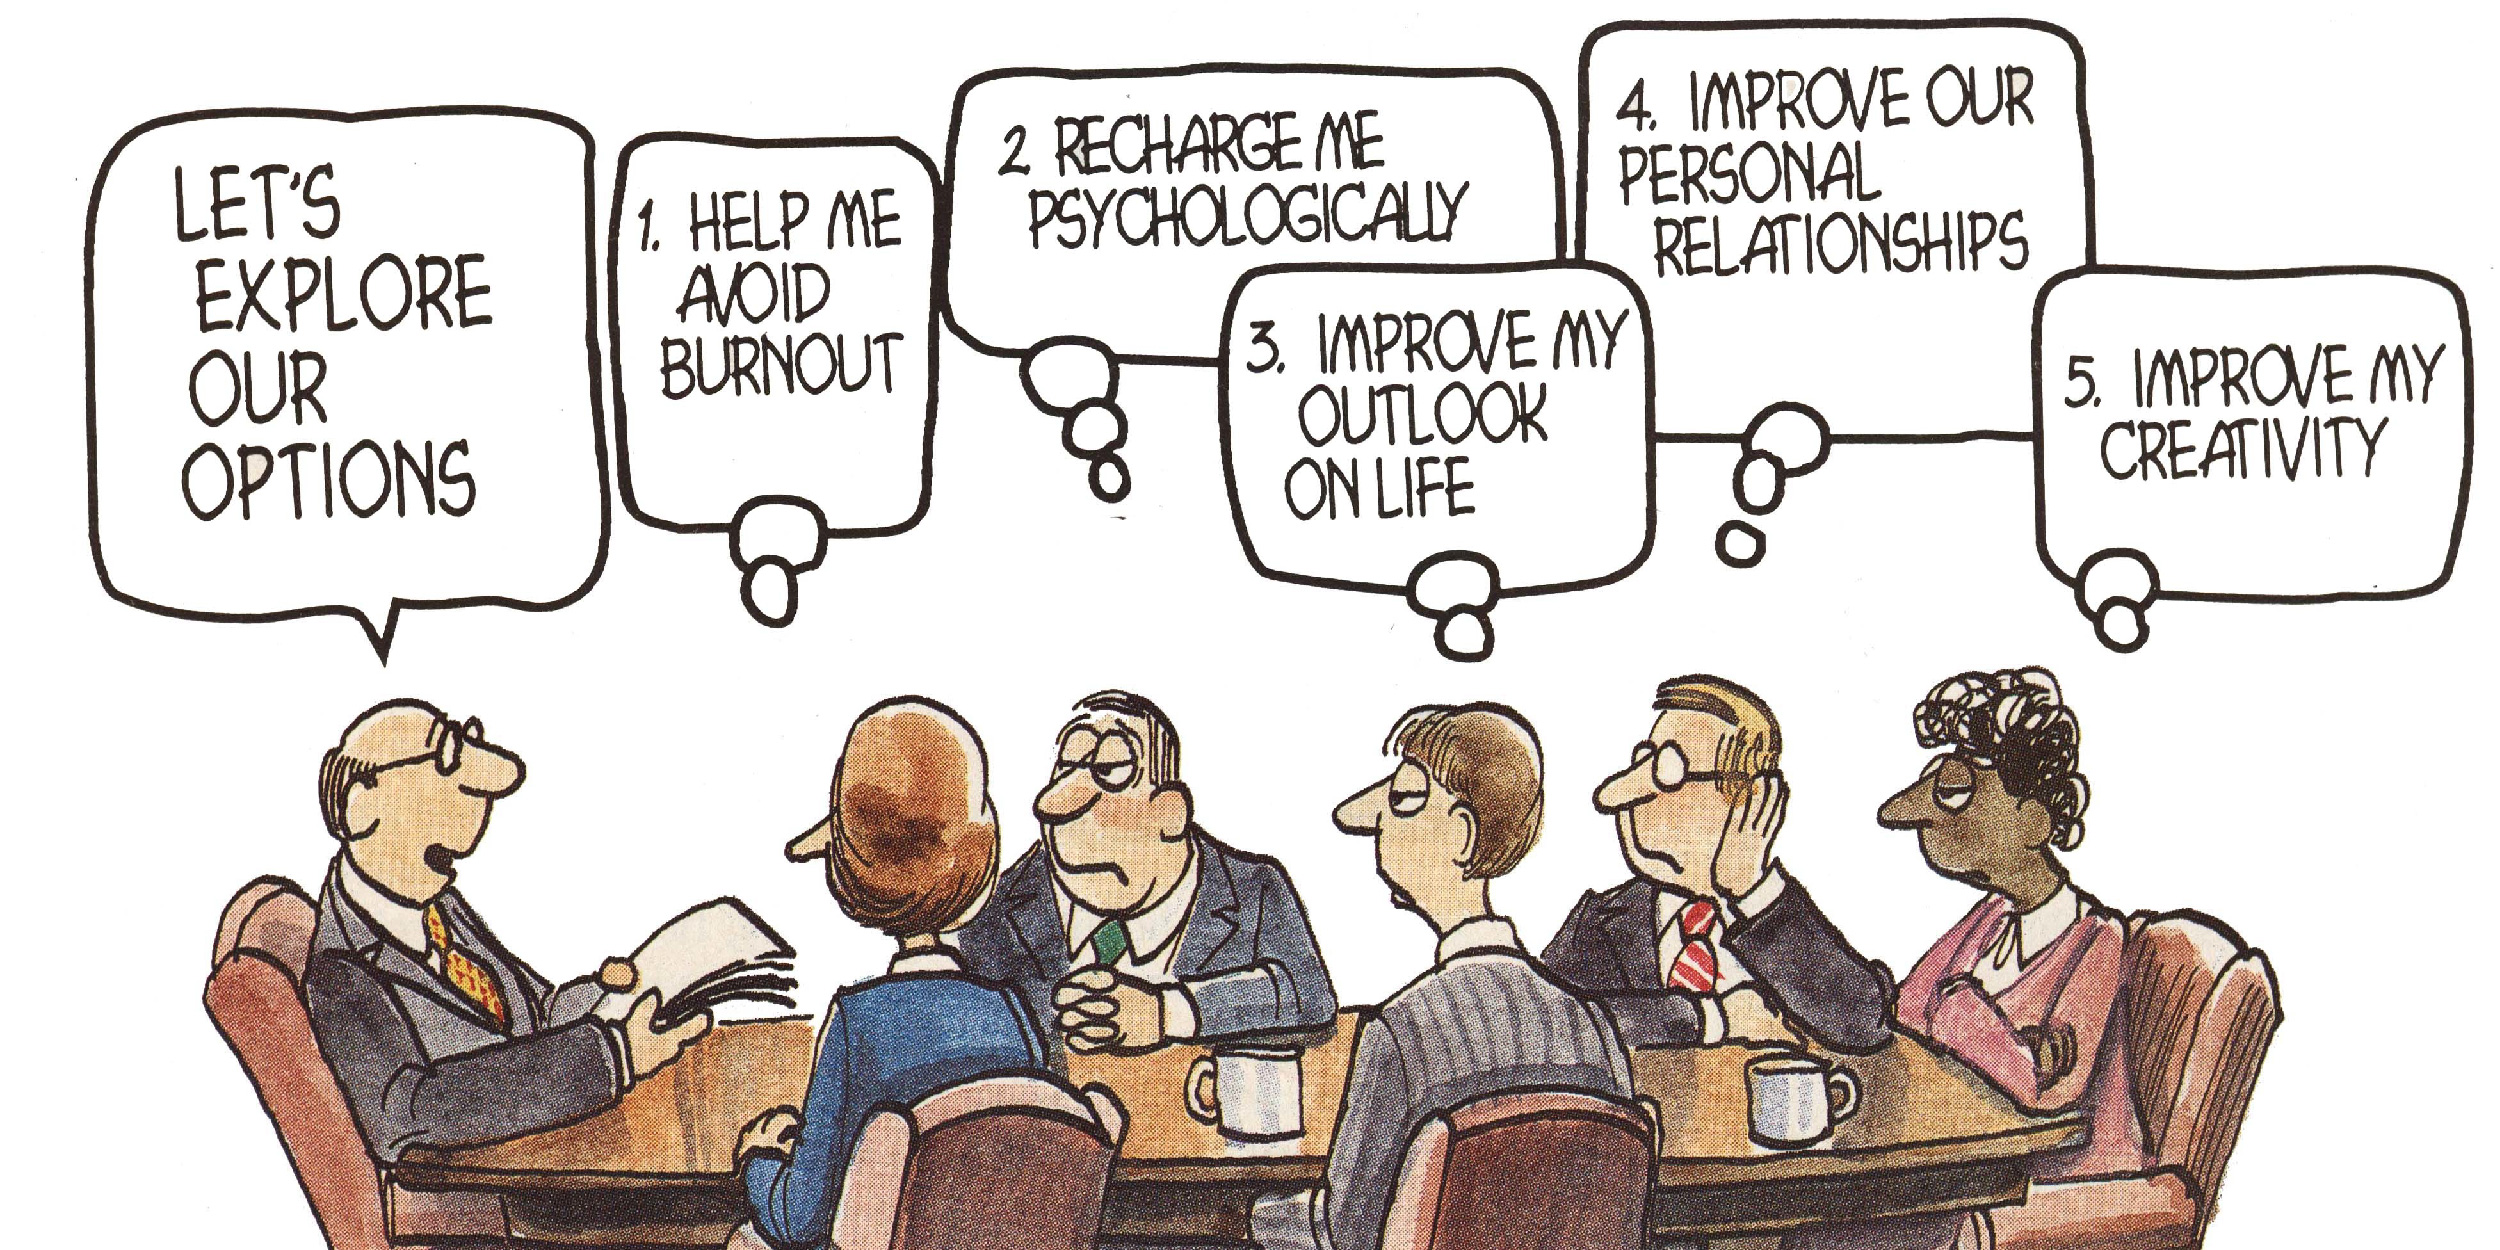 Cartoon emplpoyees discuss the importance of good executive leadership